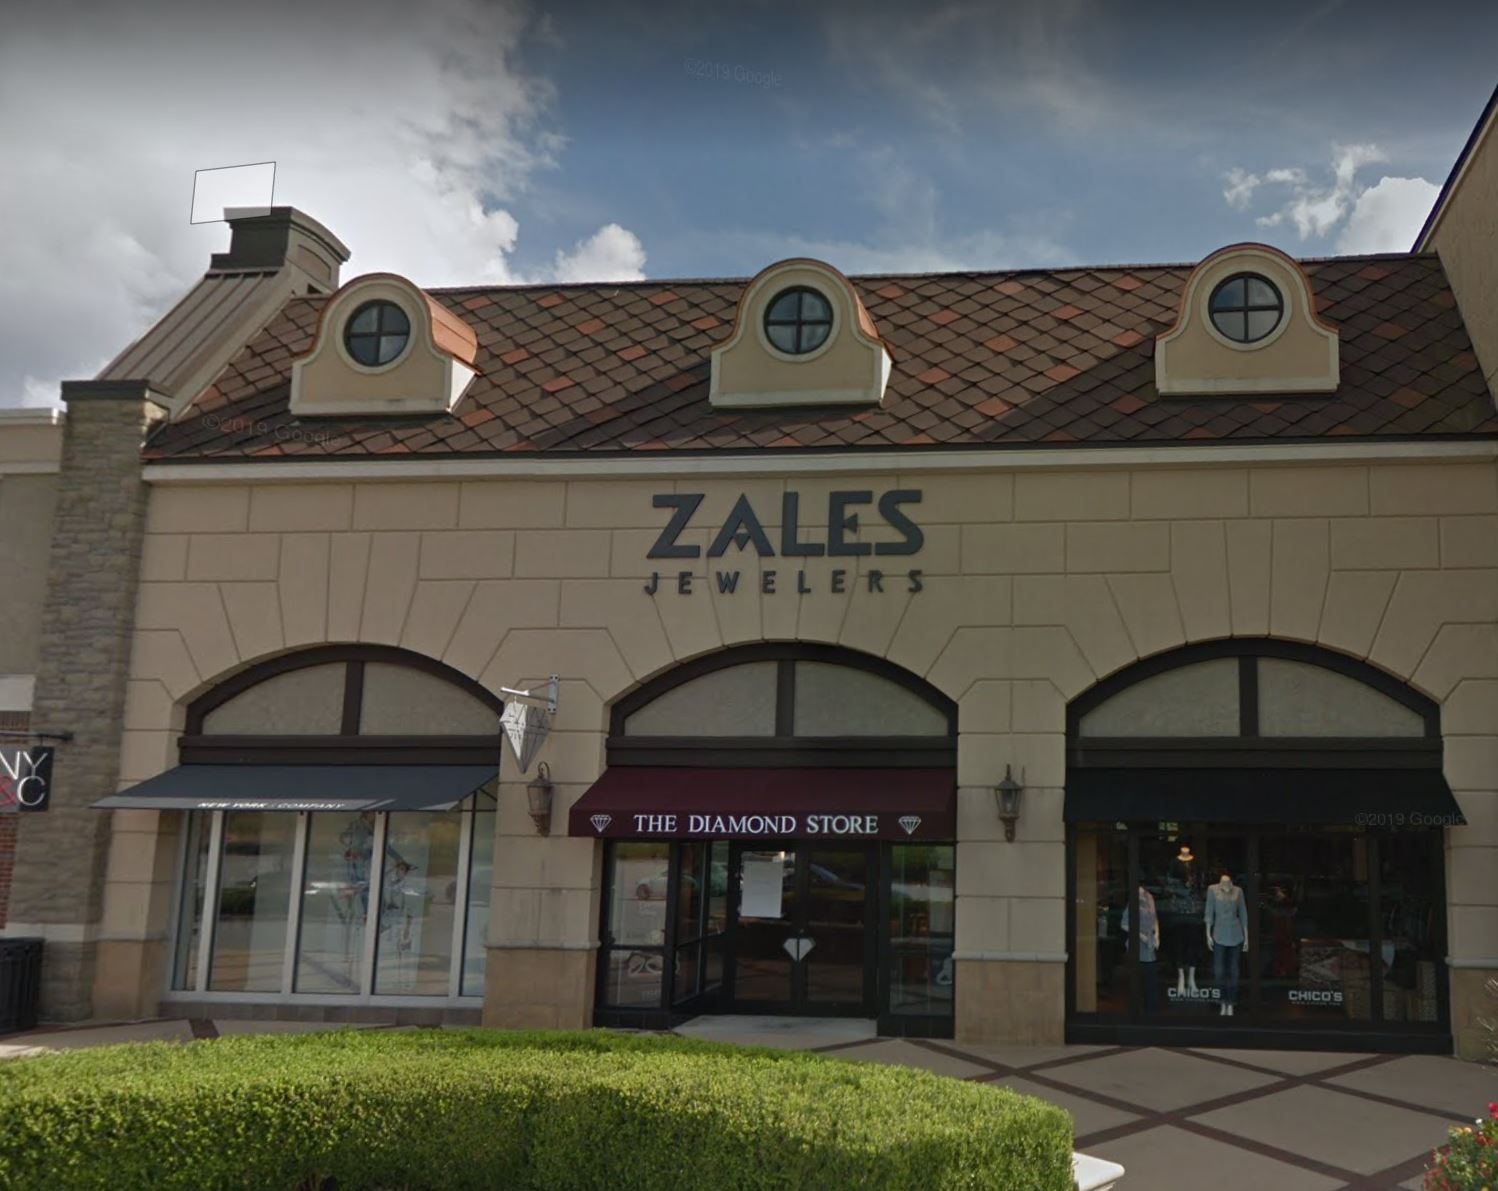 Signet Owner Of Kay Zales Jared Jewelry Stores Closing 400 Locations Al Com